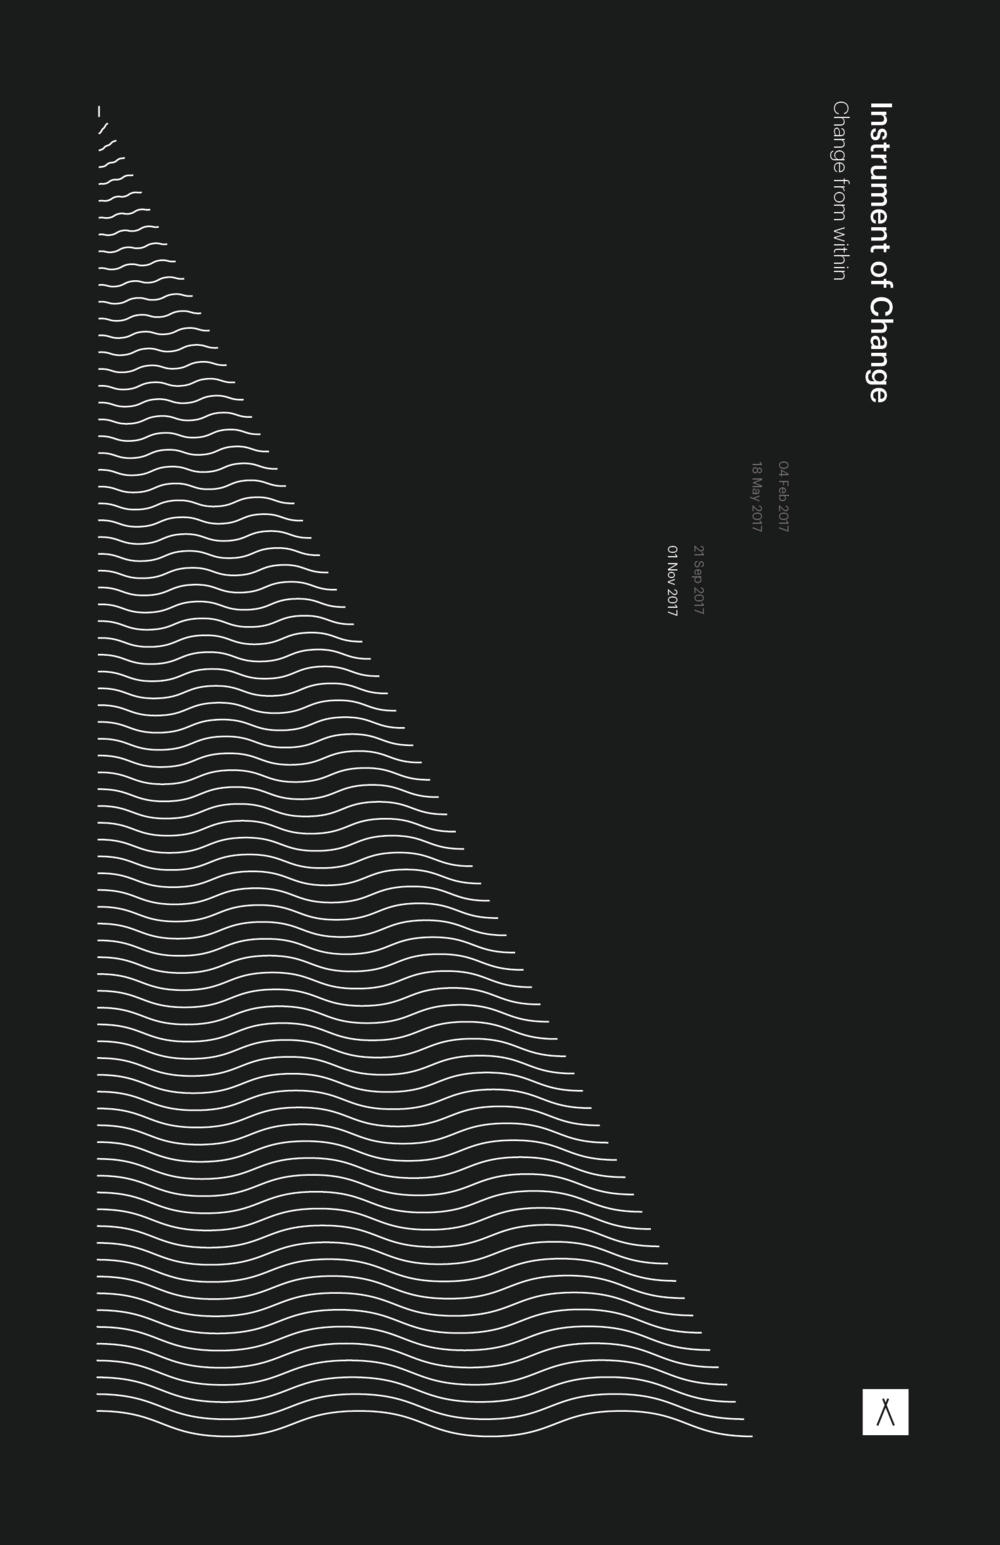 IDEO-Poster-4.png